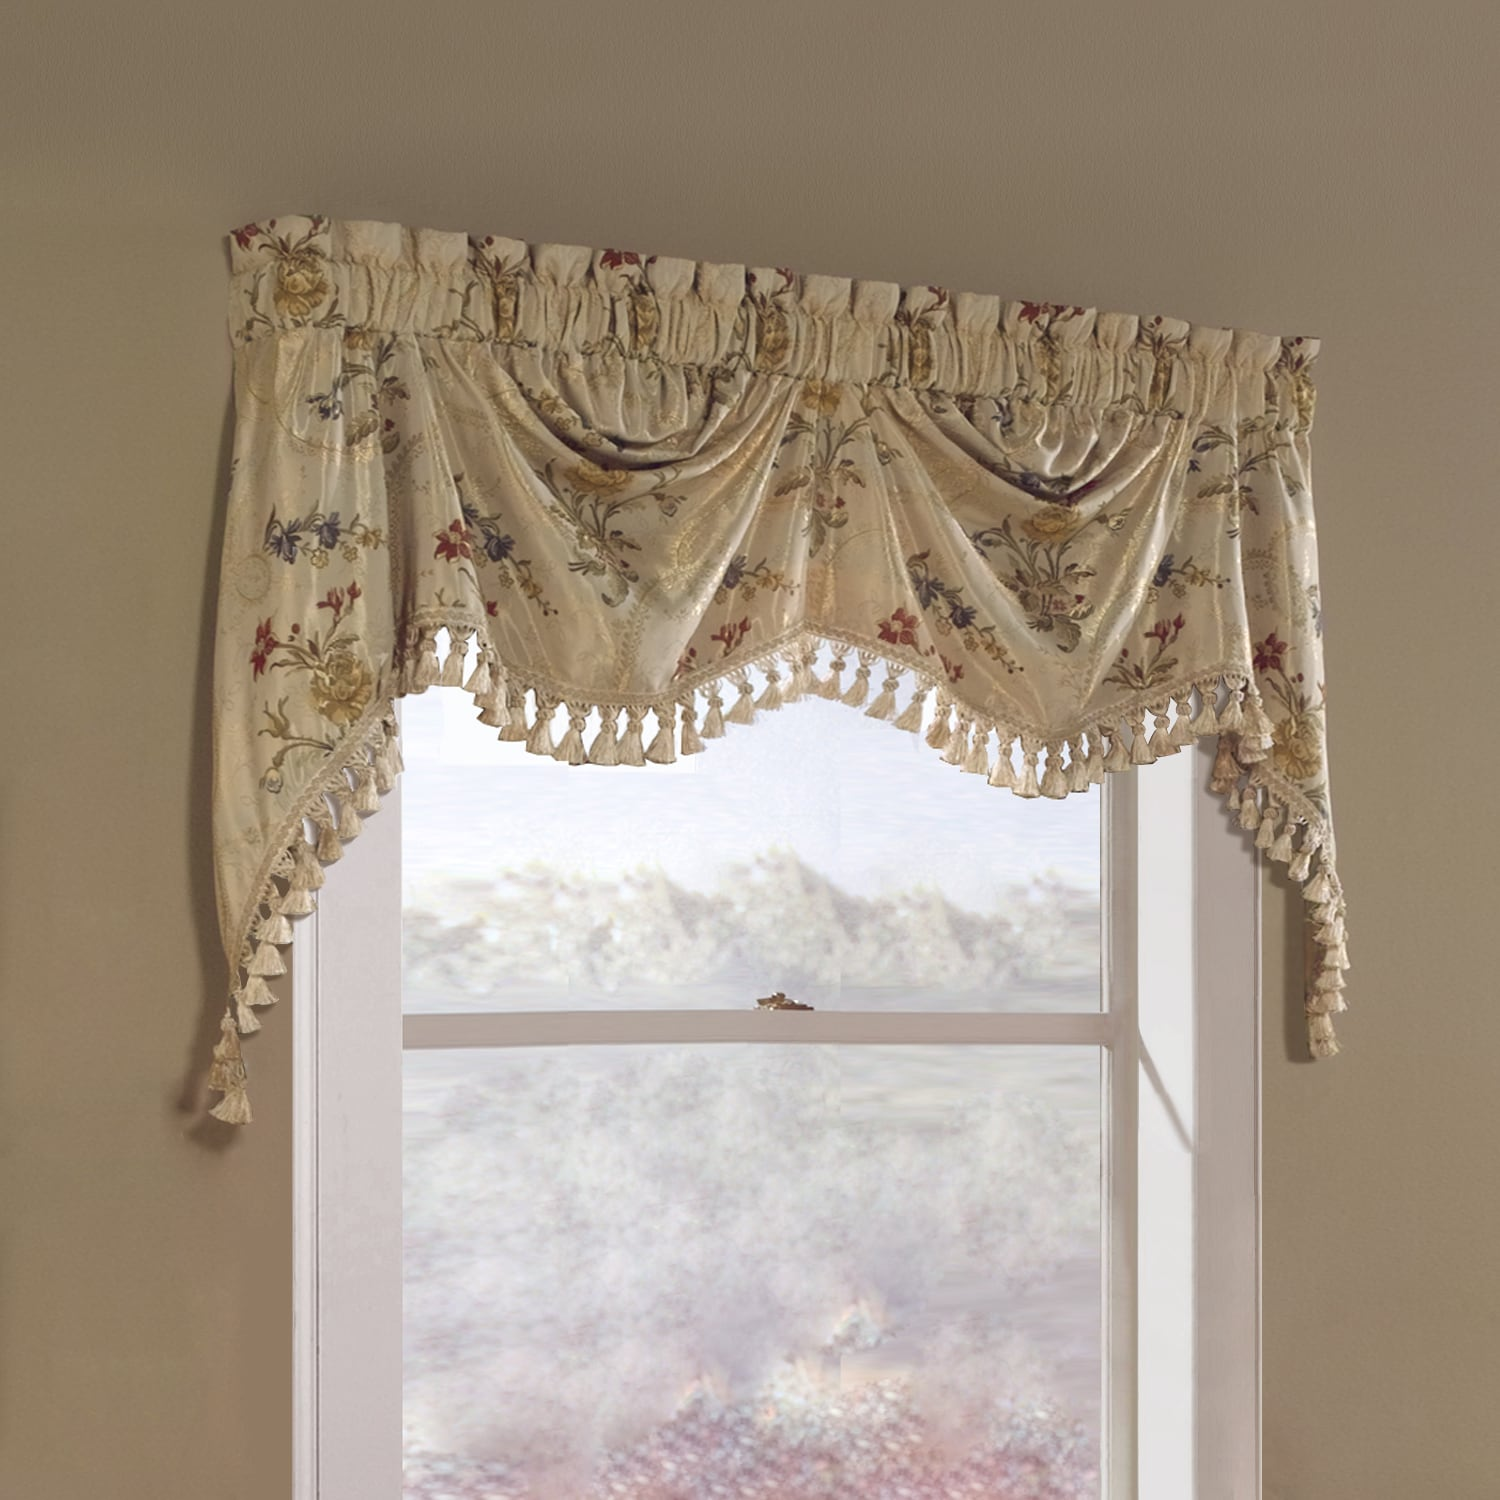 scarf home depot the in treatments valance polyester curtain b l n window burgundy scarves valances gold elements